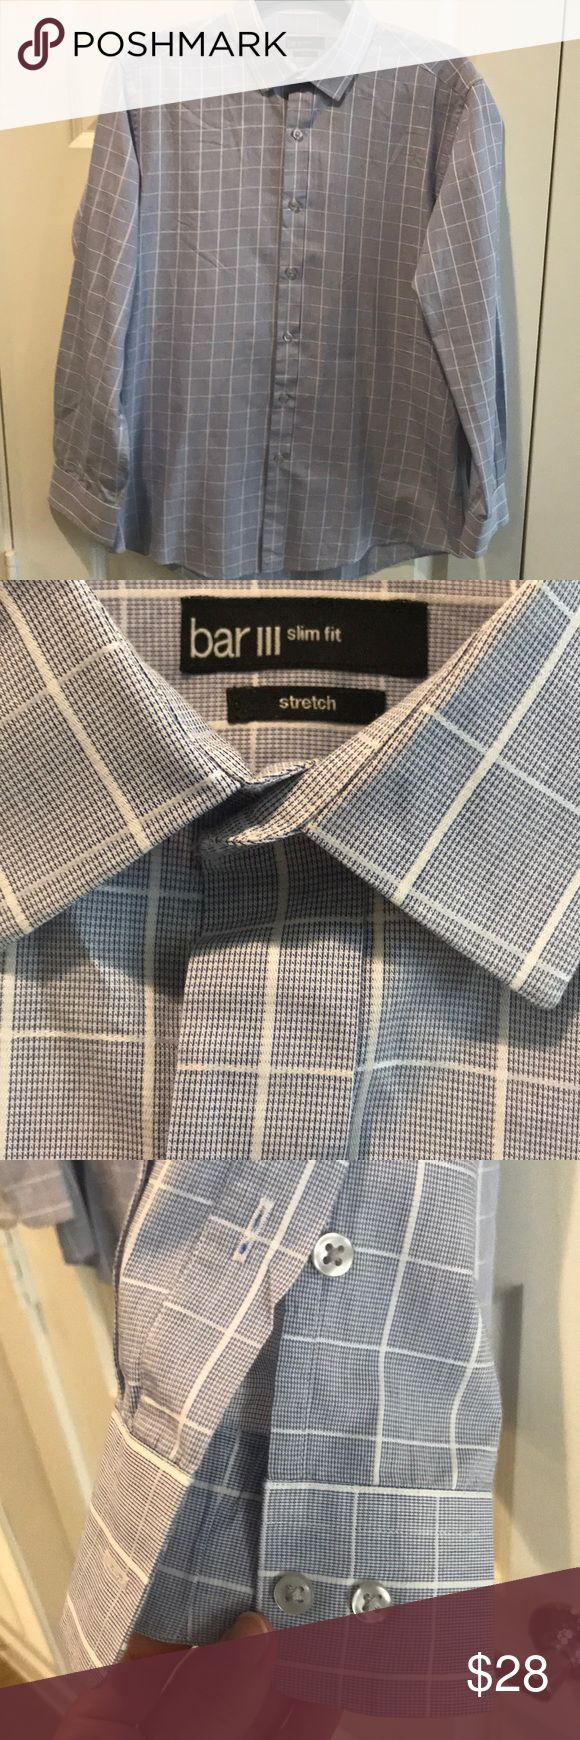 Bar III slim fit Stretch Dress Shirt Bar III from Macy's Dress Shirt. Shirt is 15-15.5 neck 32-33 Medium slim fit stretch easy care 70% cotton 30% polyester made in Indonesia. Used but in excellent condition was always dry cleaned. Colors are white and royal blue. Bar III Shirts Dress Shirts